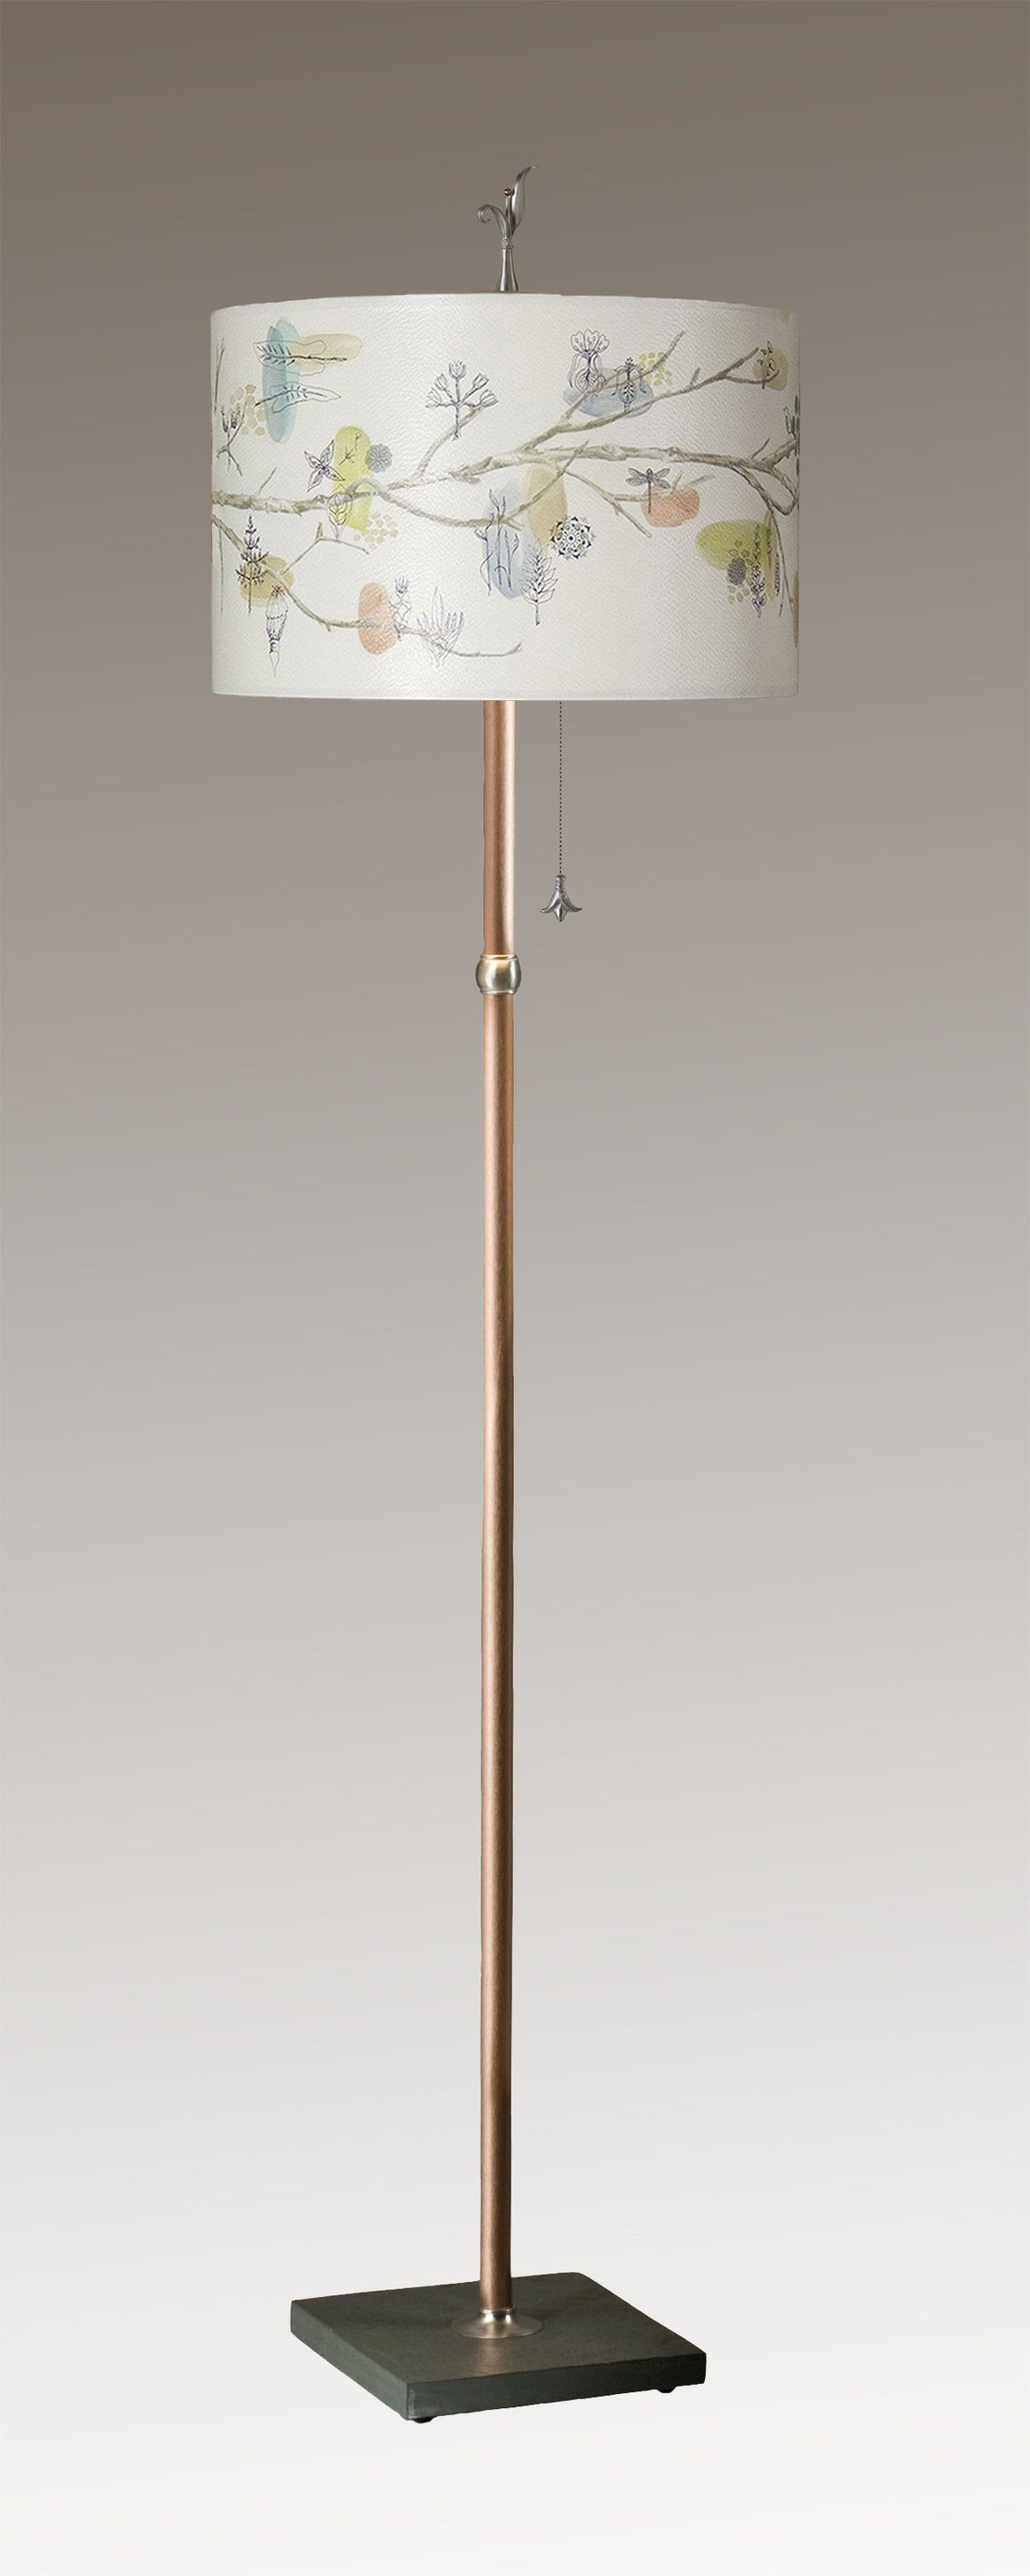 Copper Floor Lamp on Vermont Slate with Large Drum Shade in Artful Branch